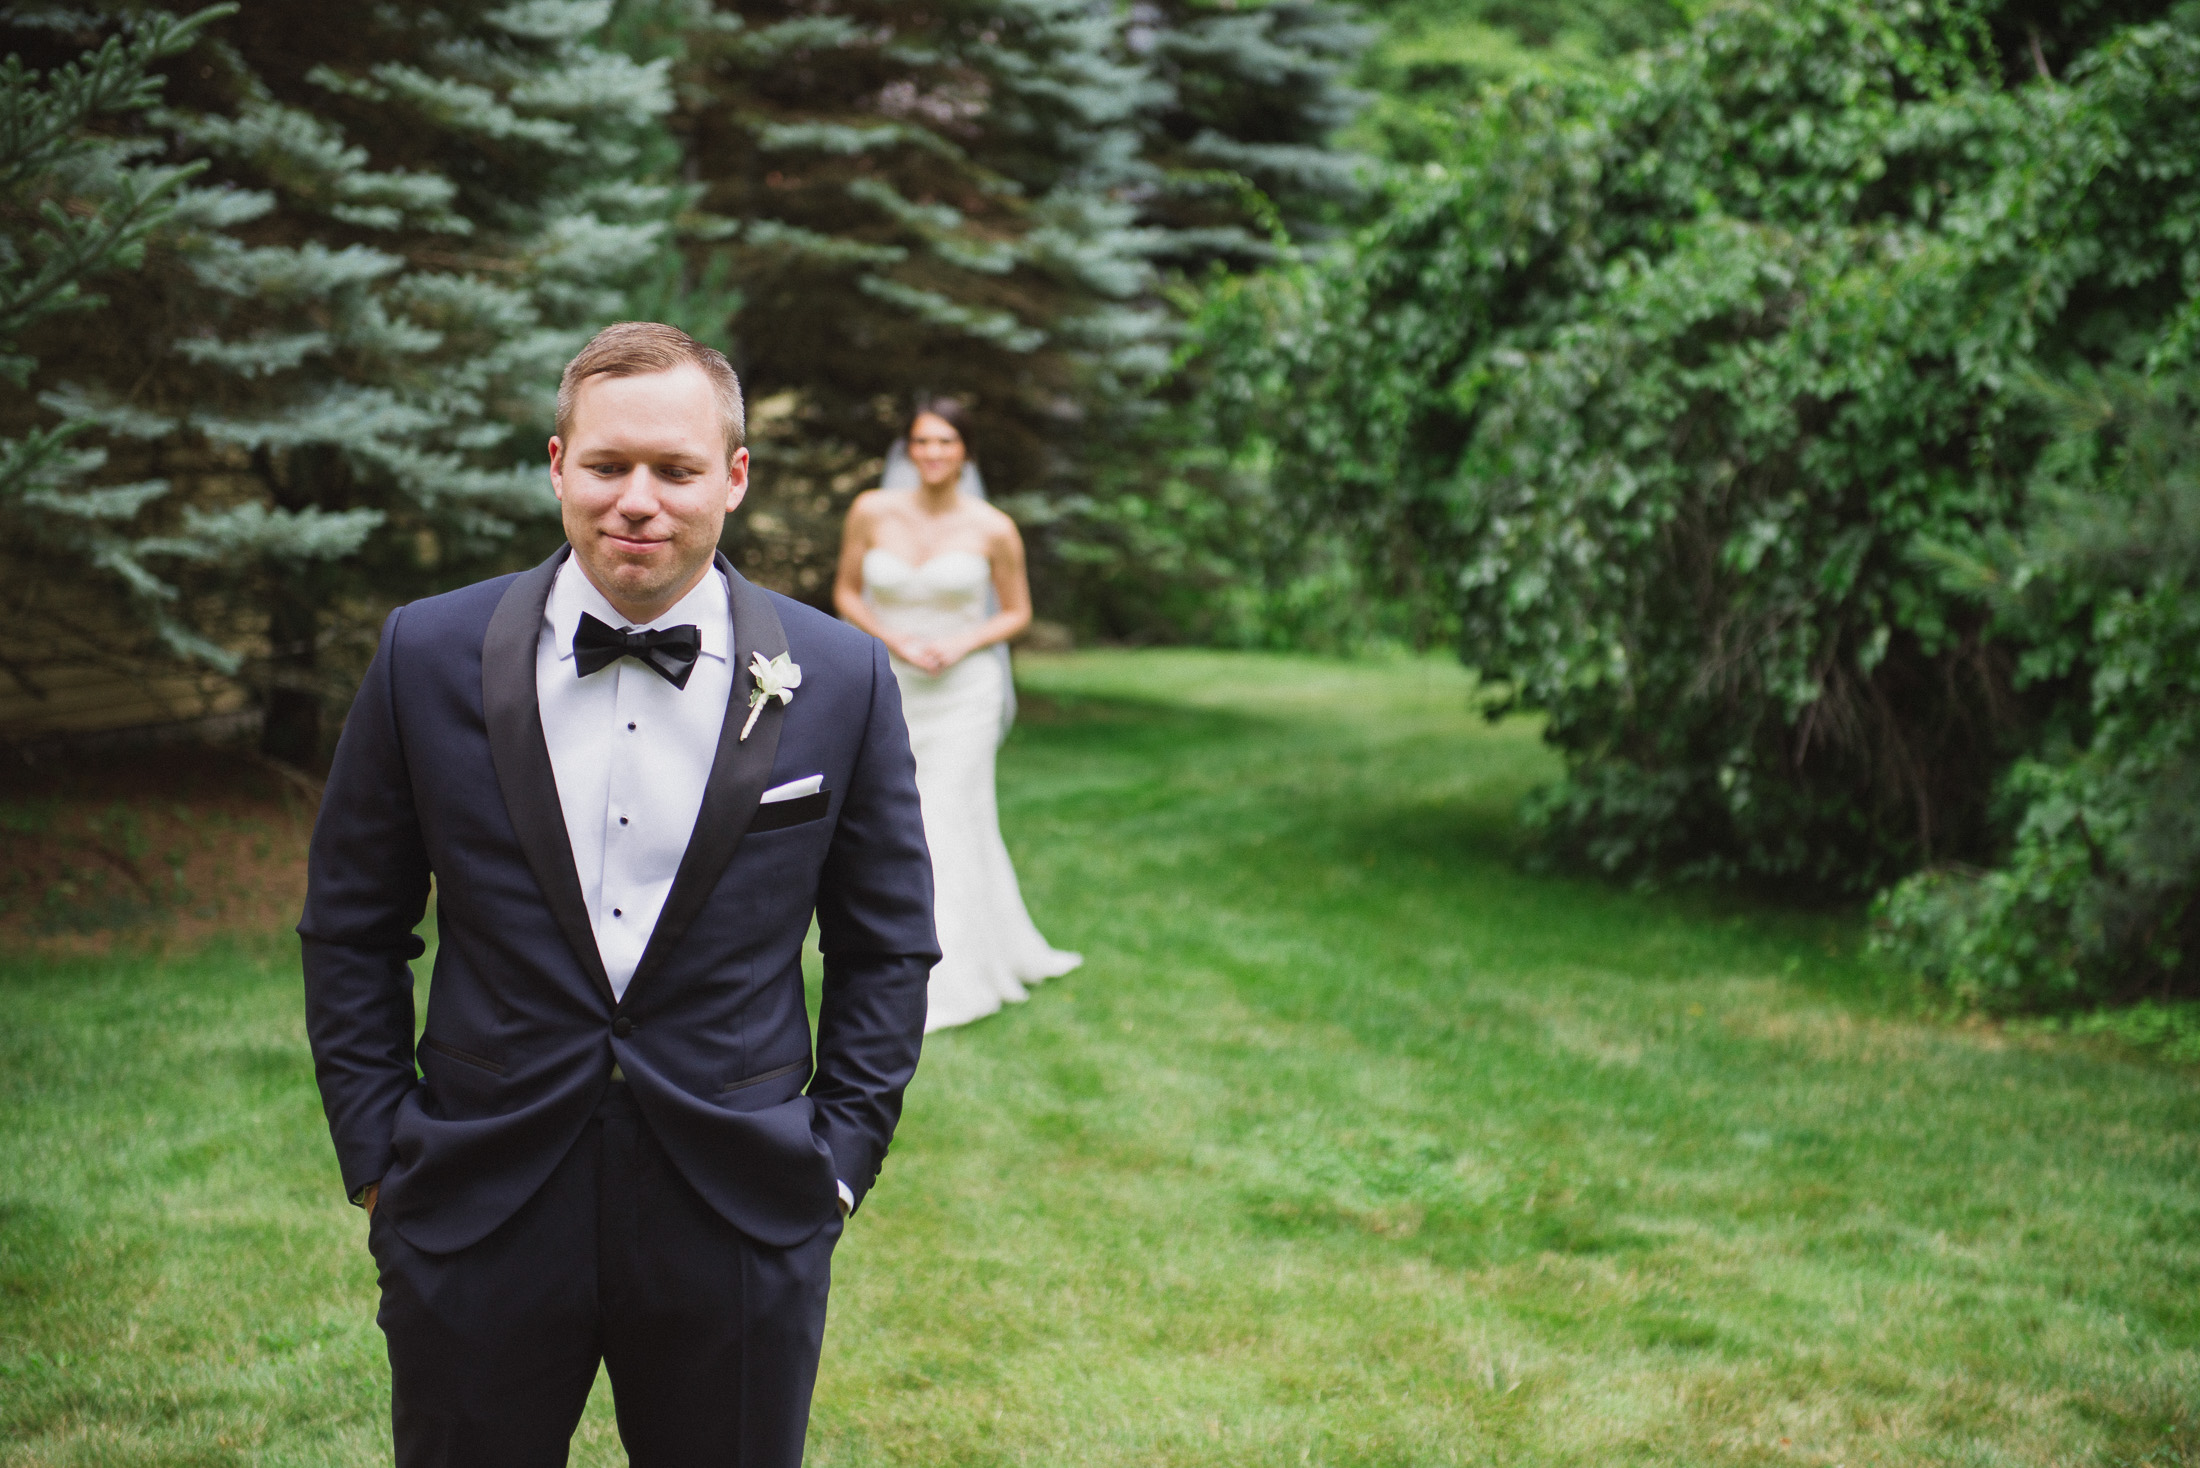 NH Wedding Photography: first look